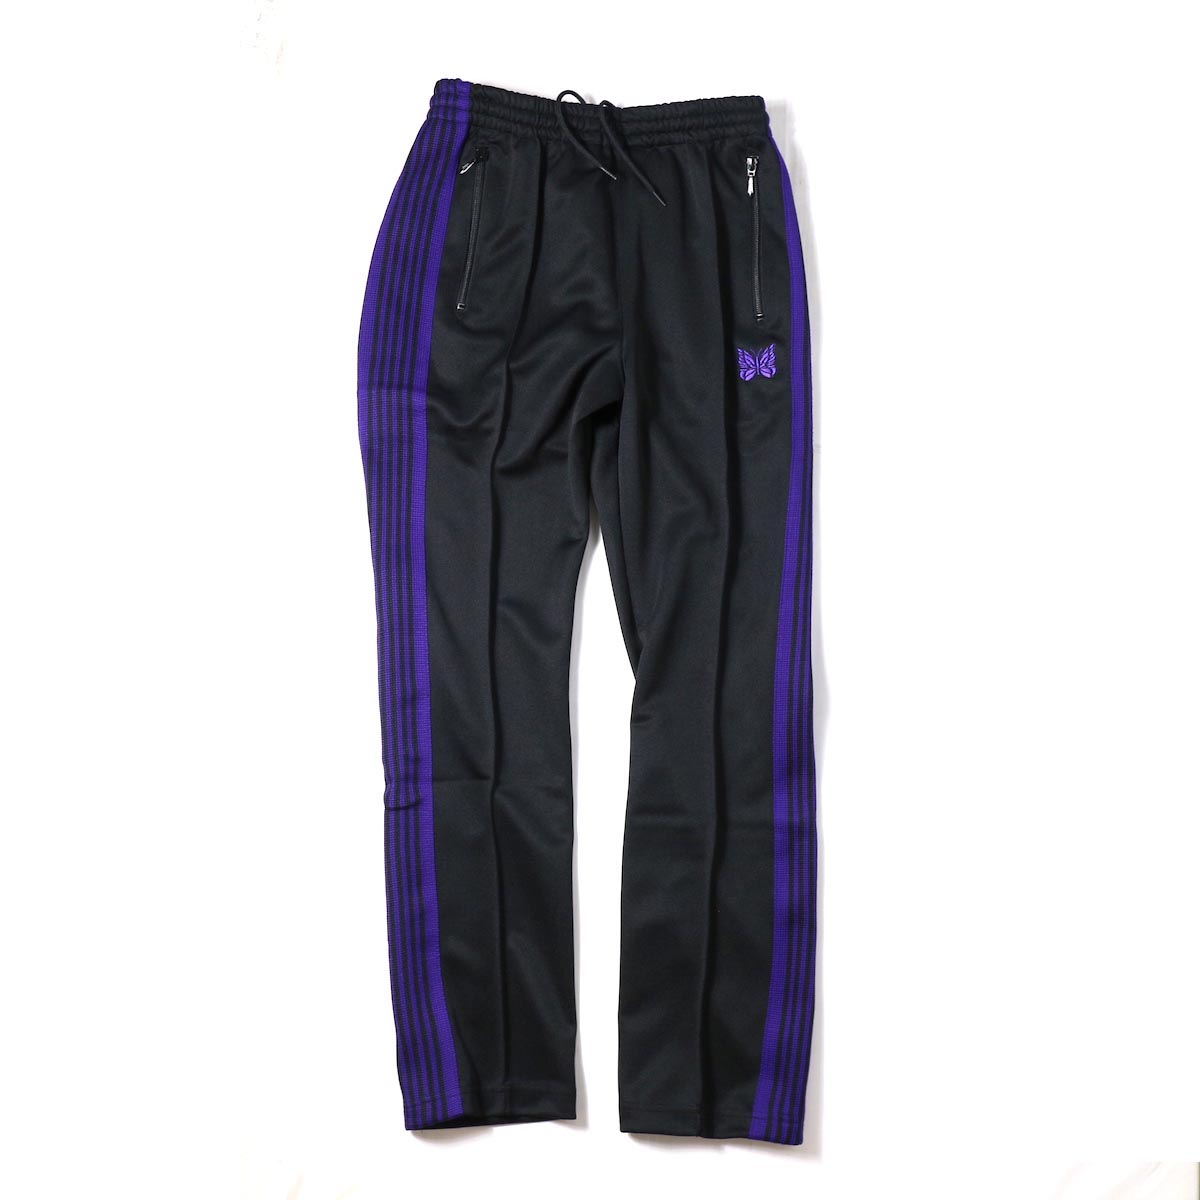 Needles / Narrow Track Pant -Poly Smooth (Black)